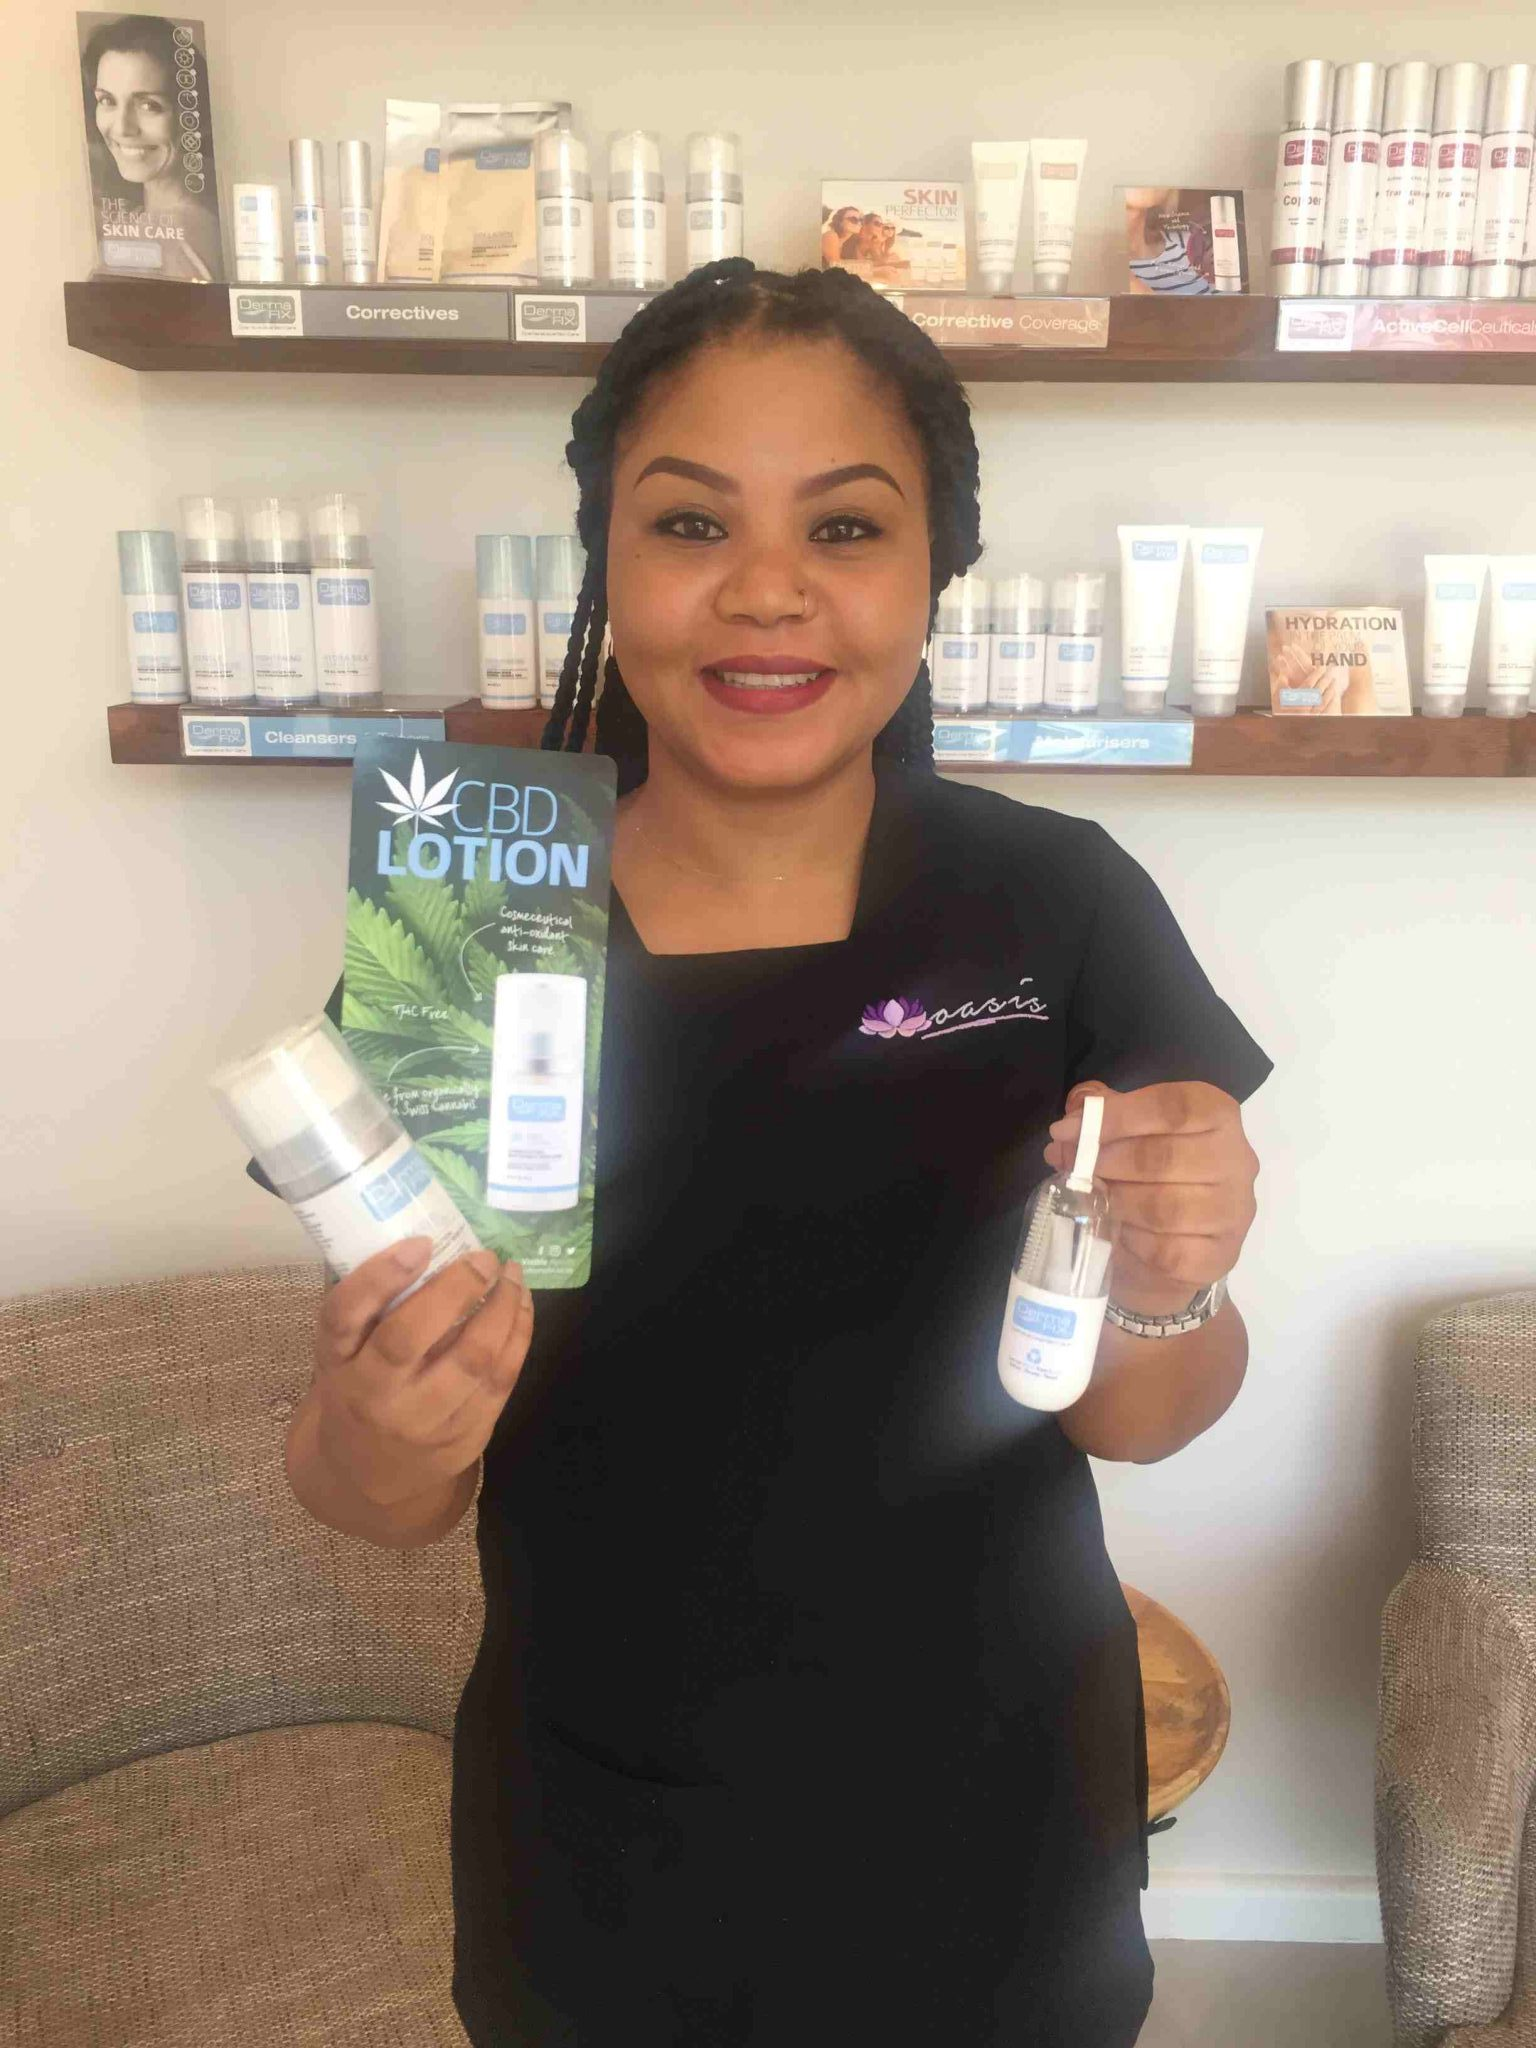 lady with cbd products